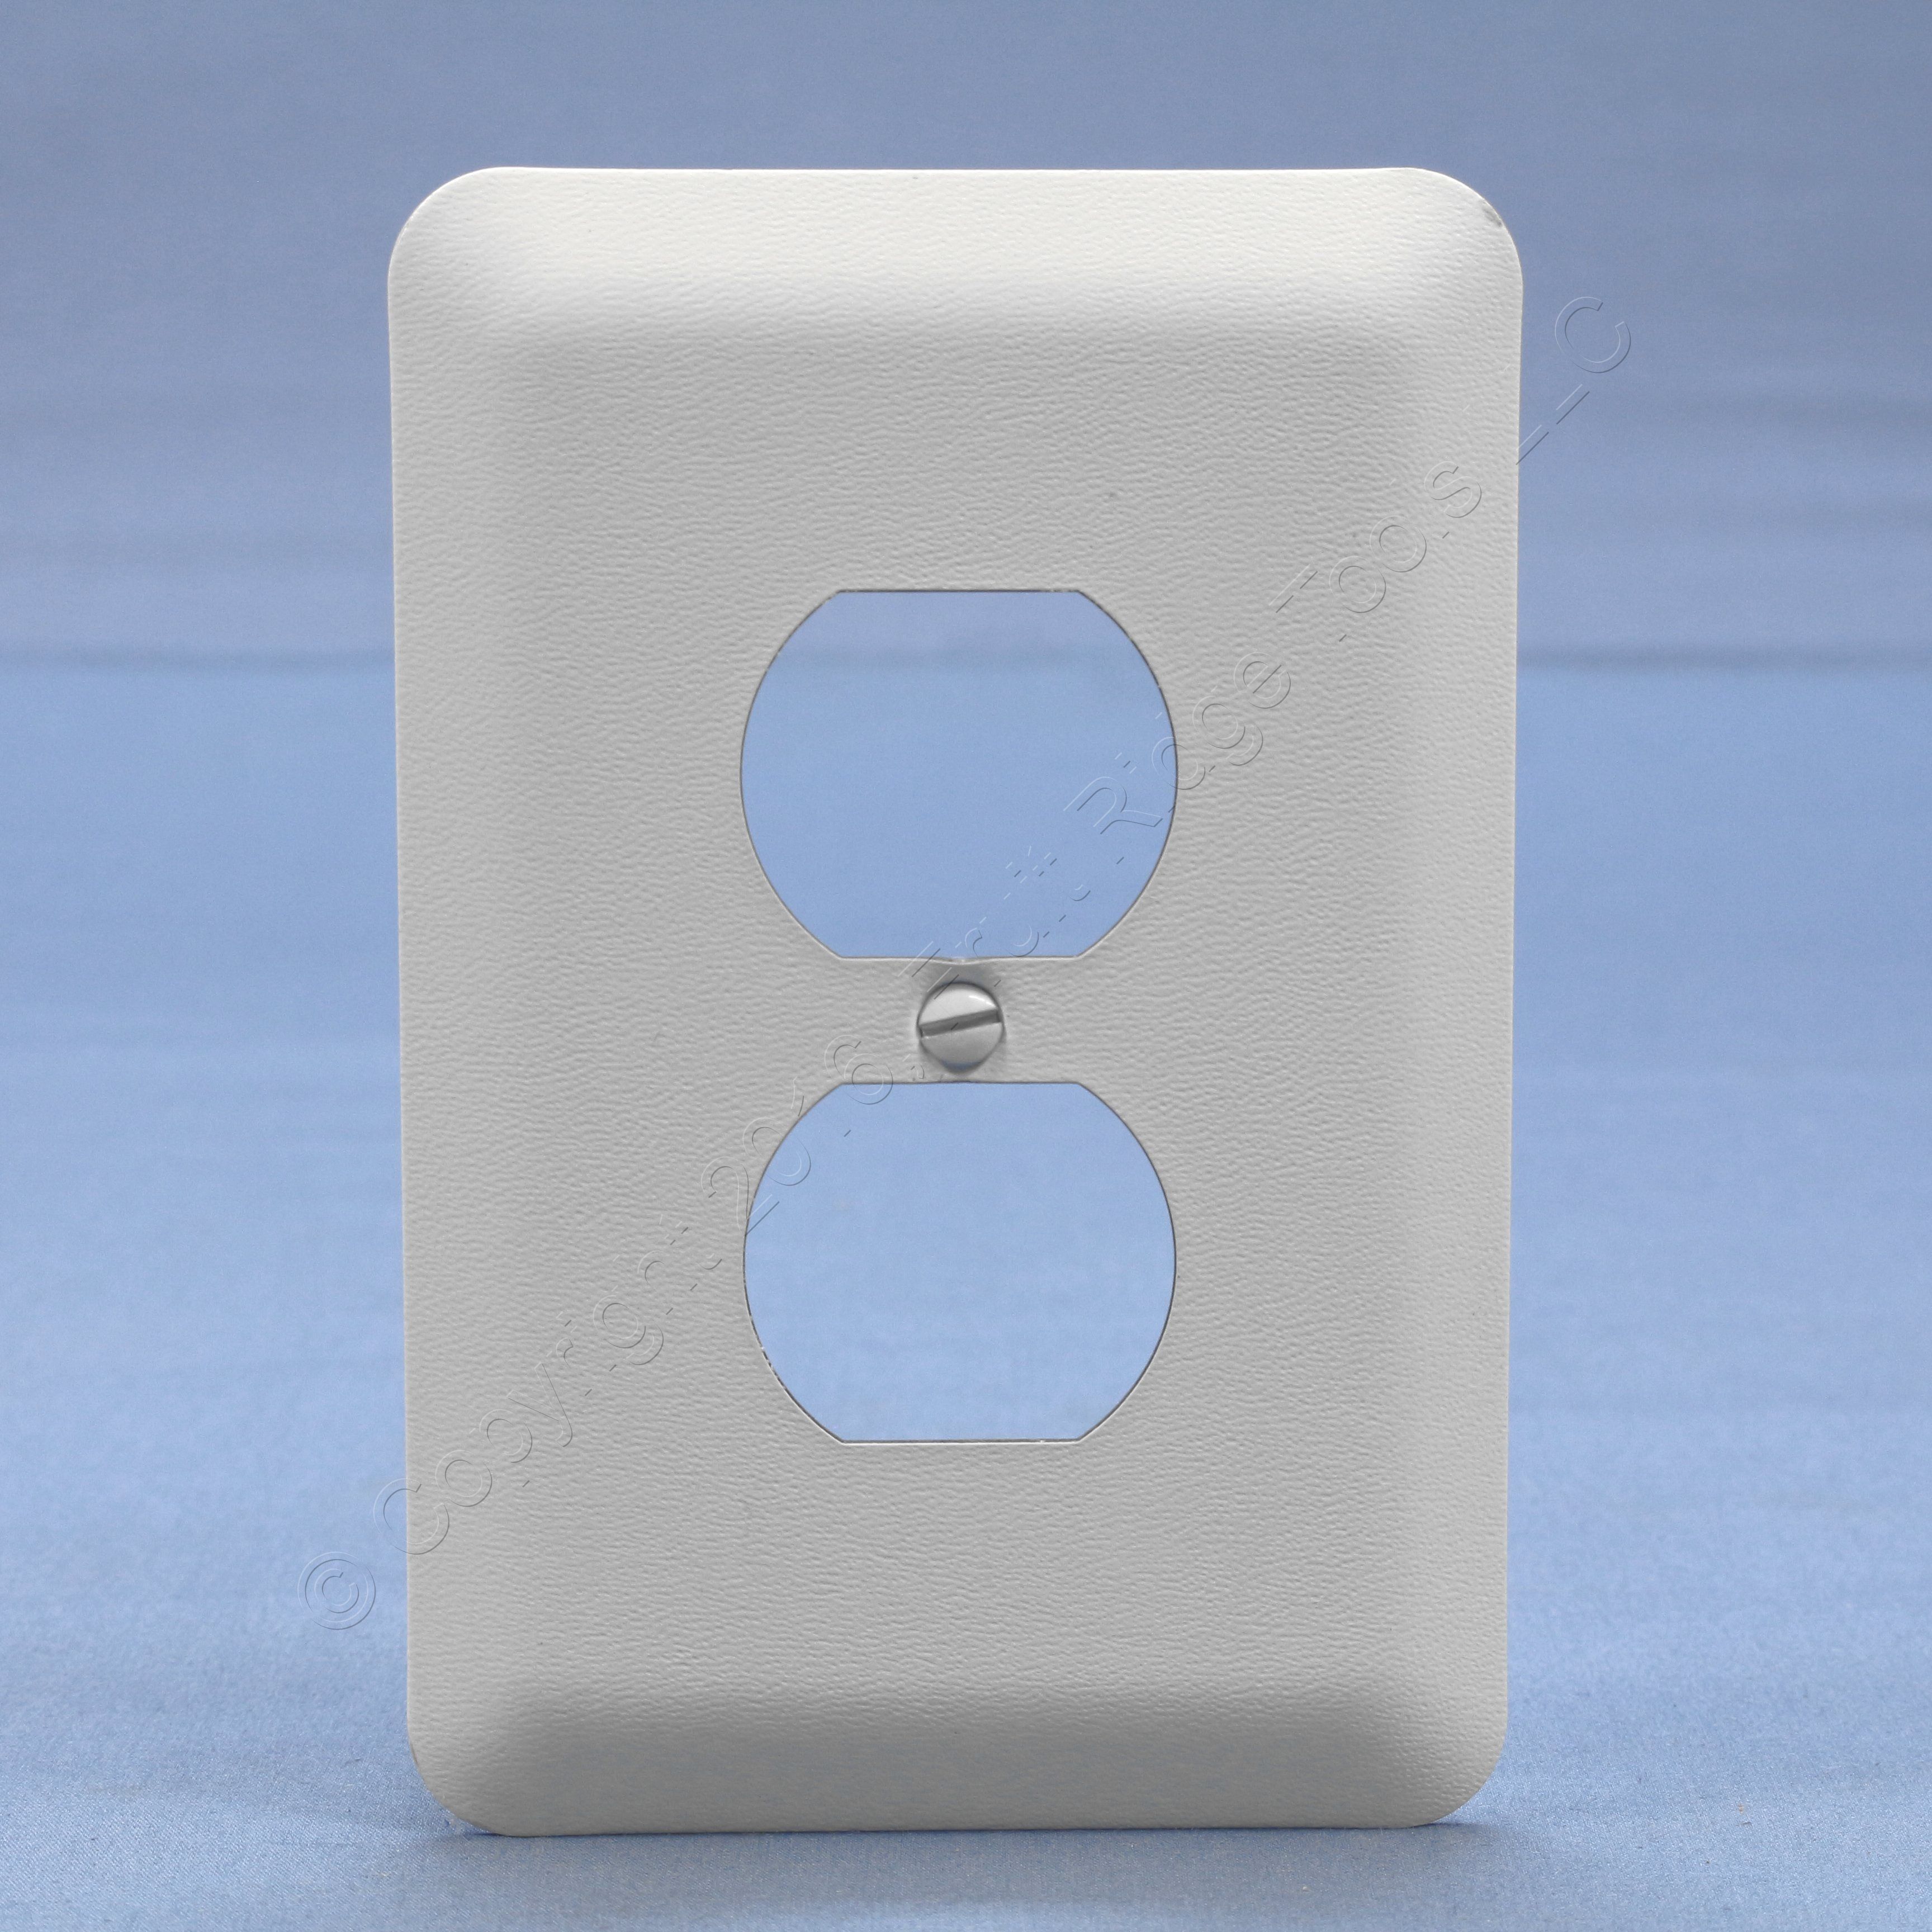 Leviton jumbo white outlet cover oversize duplex Electrical outlet covers